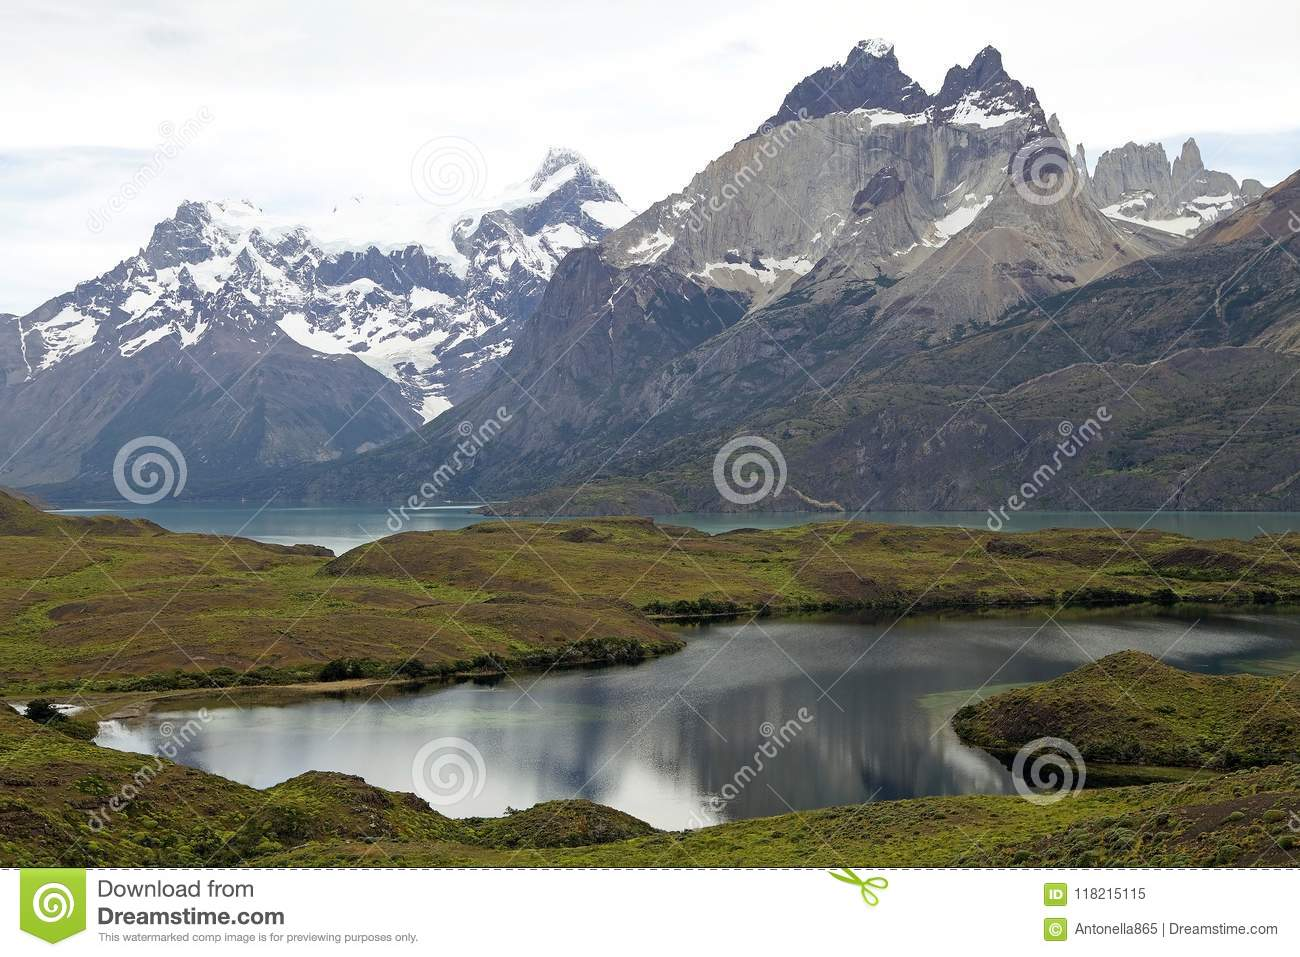 Cuernos del Paine in Torres del Paine National Park, Magallanes Region, southern Chile